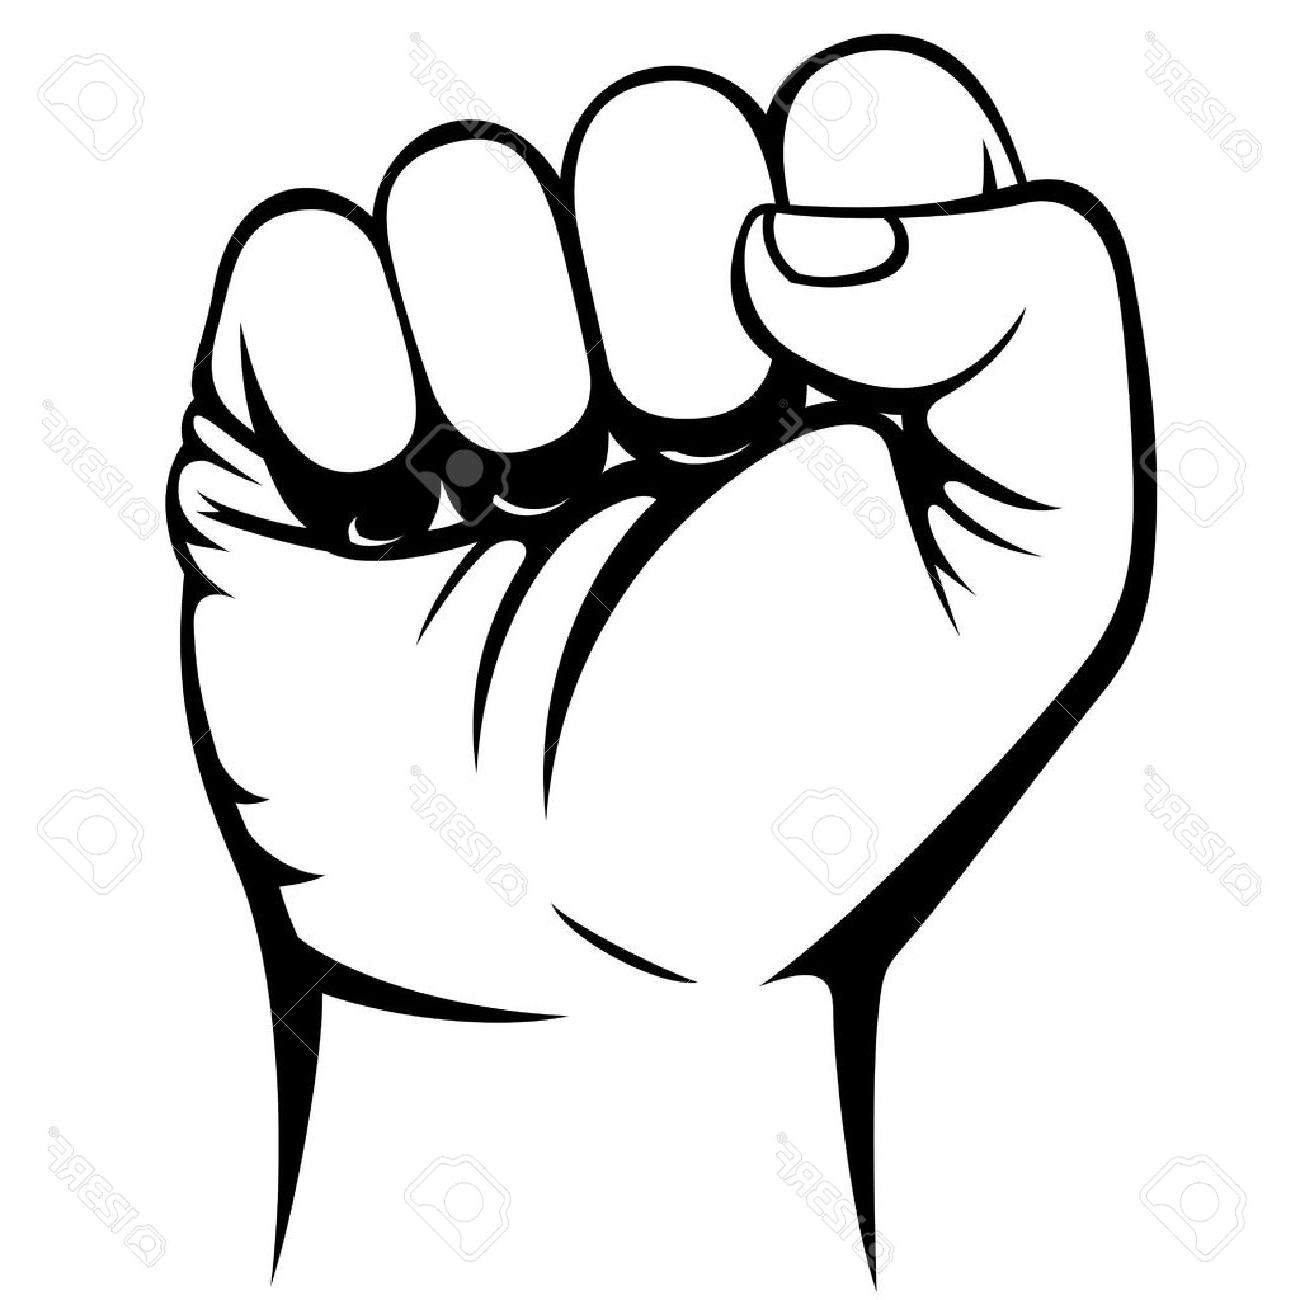 1300x1300 Best Free Male Clenched Fist Hand Stock Vector Image